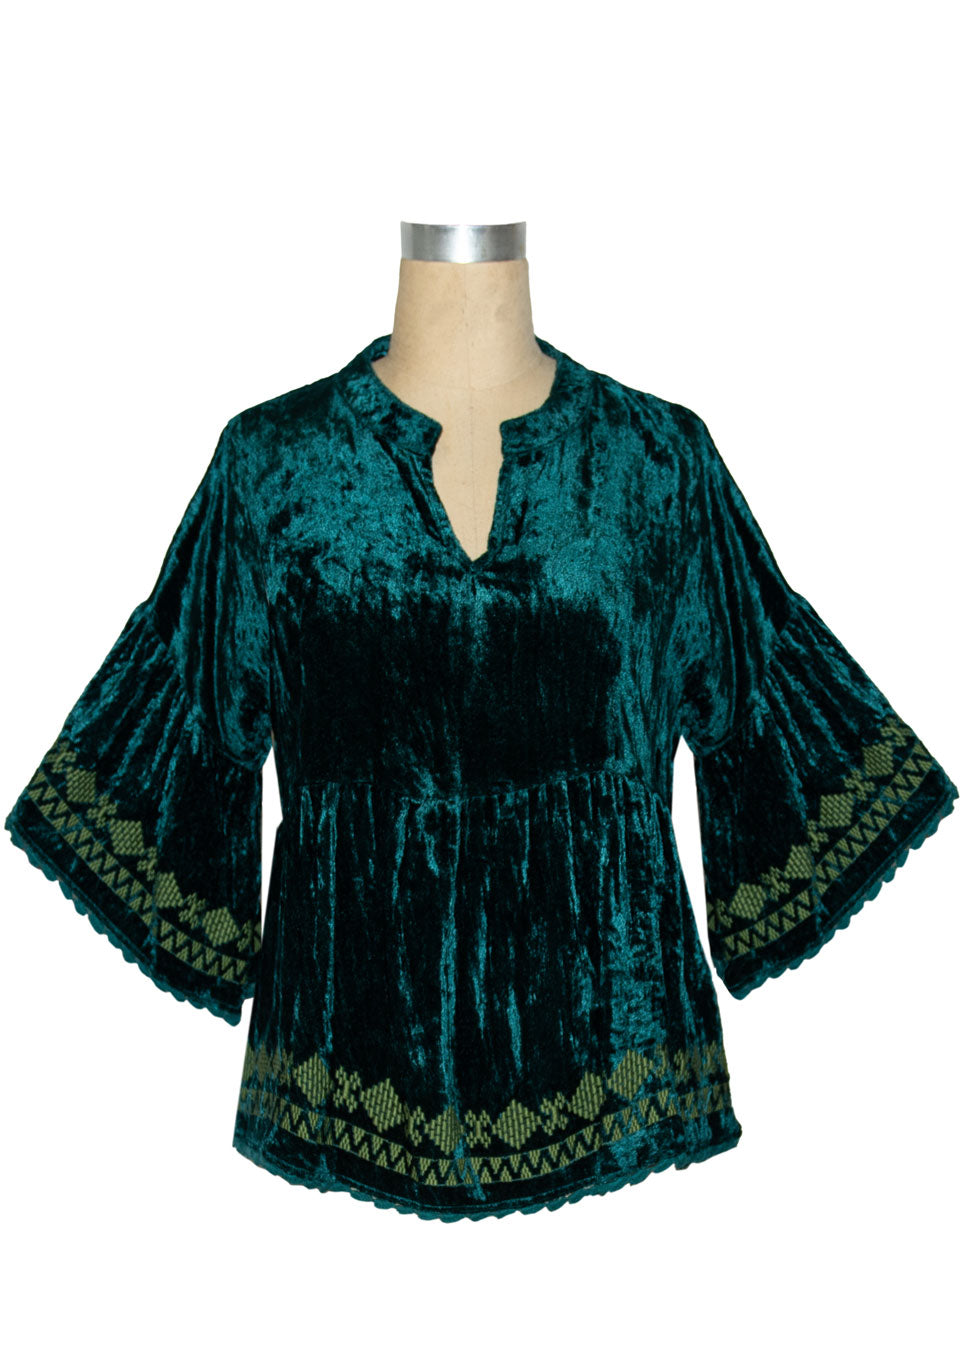 Ivy Jane Teal Embrodiered Velvet Top 6Whiskey Winter 2020